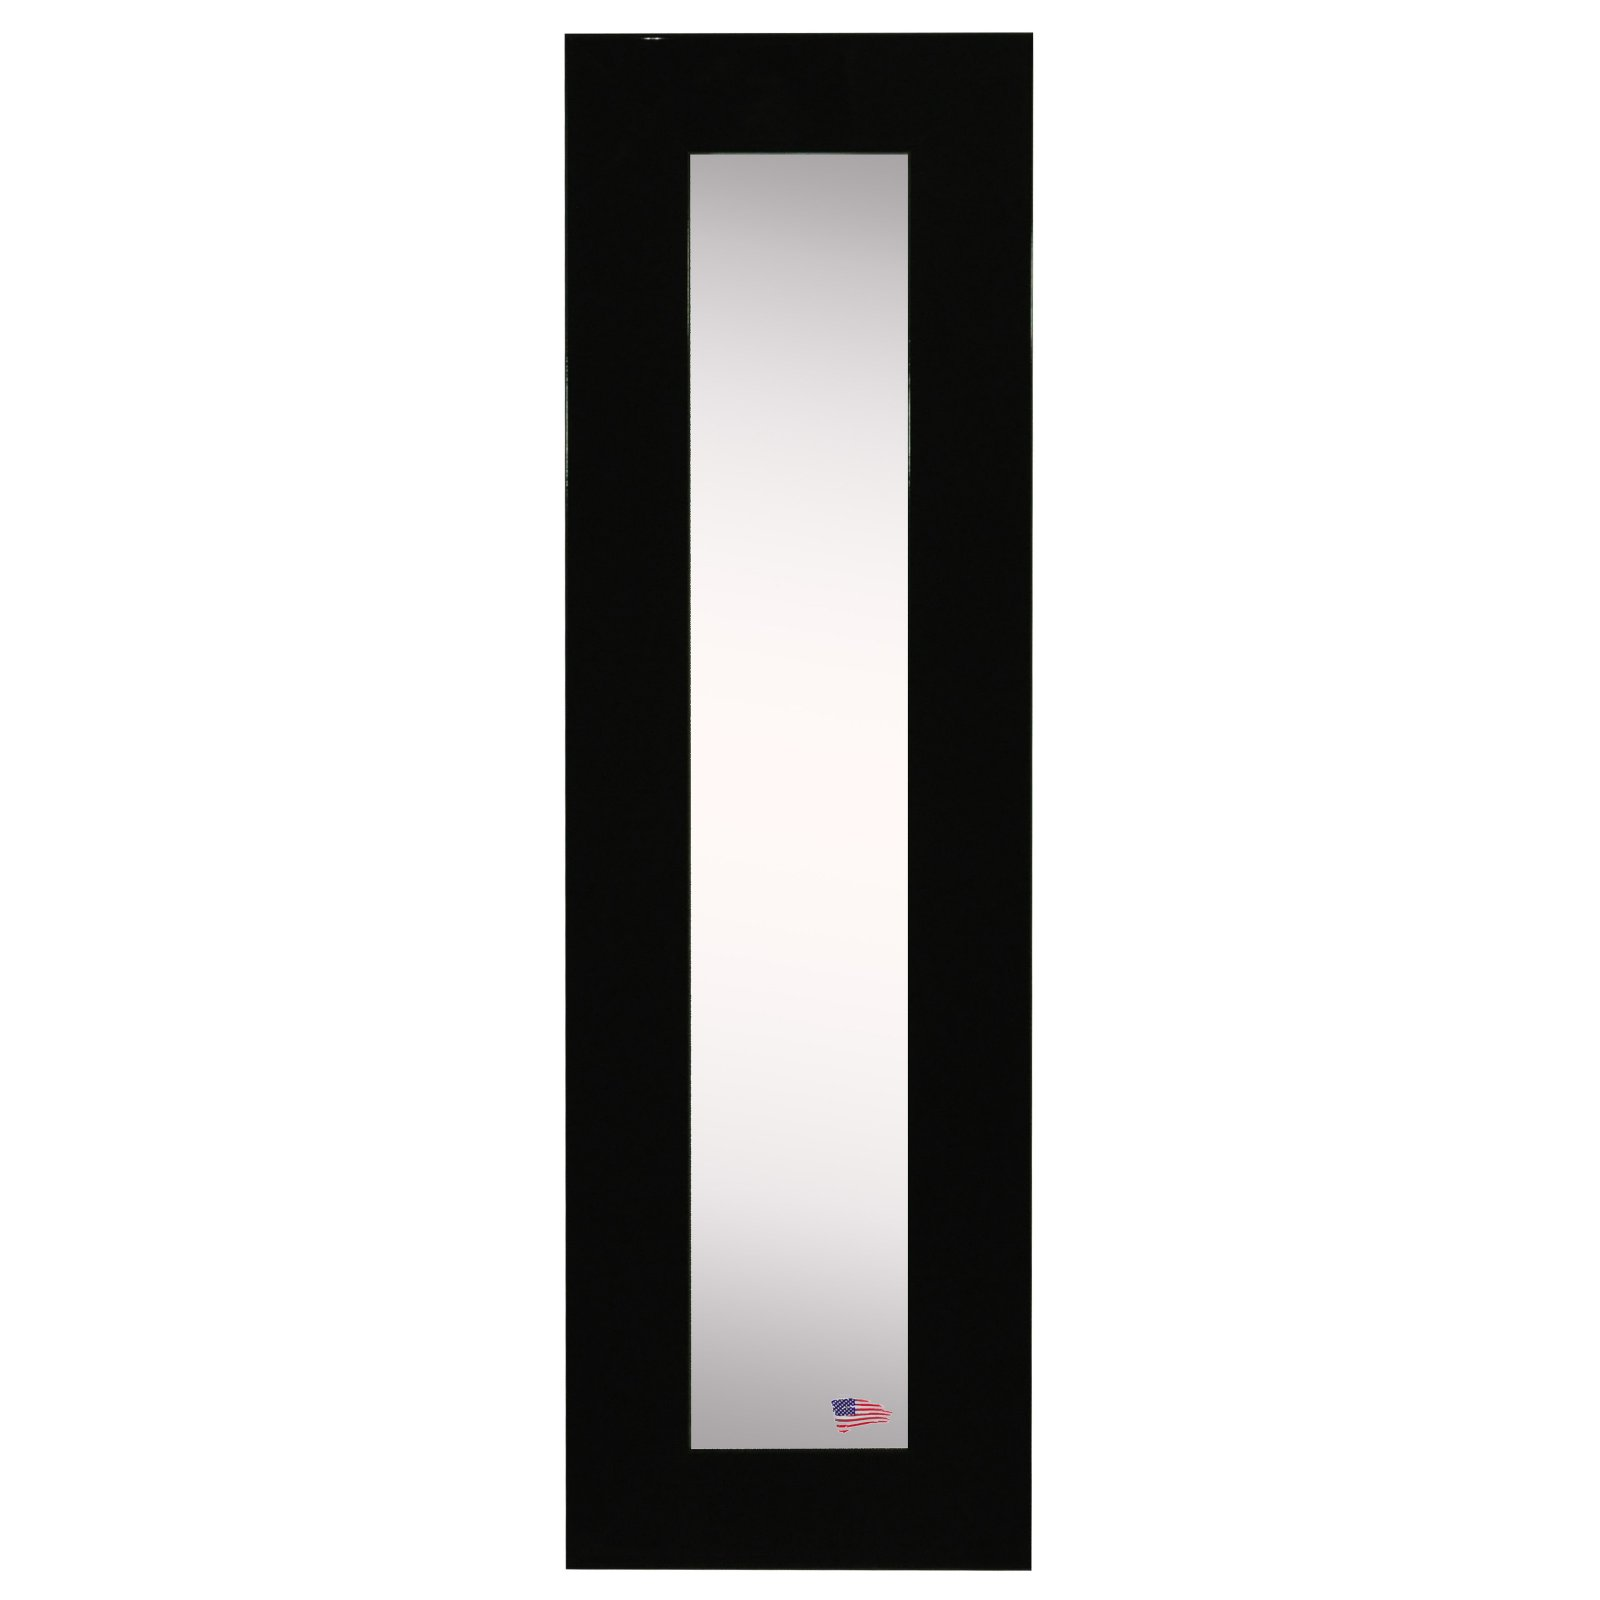 Rayne Mirrors Delta Panel Wall Mirror Set of 2 by Overstock